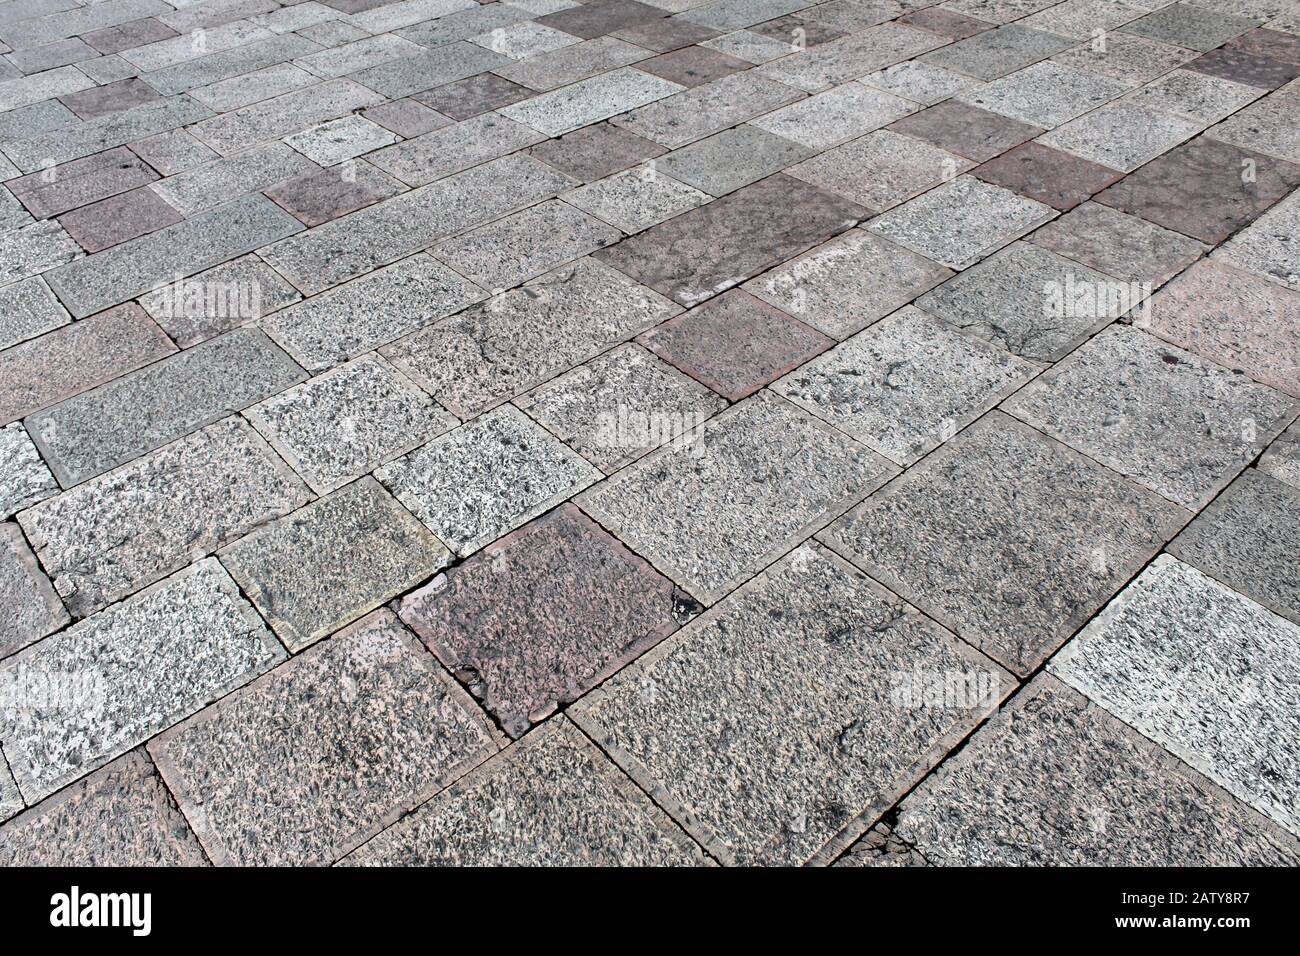 Natural Stone Floor Tiles Squares And Rectangles Texture Stock Photo Alamy